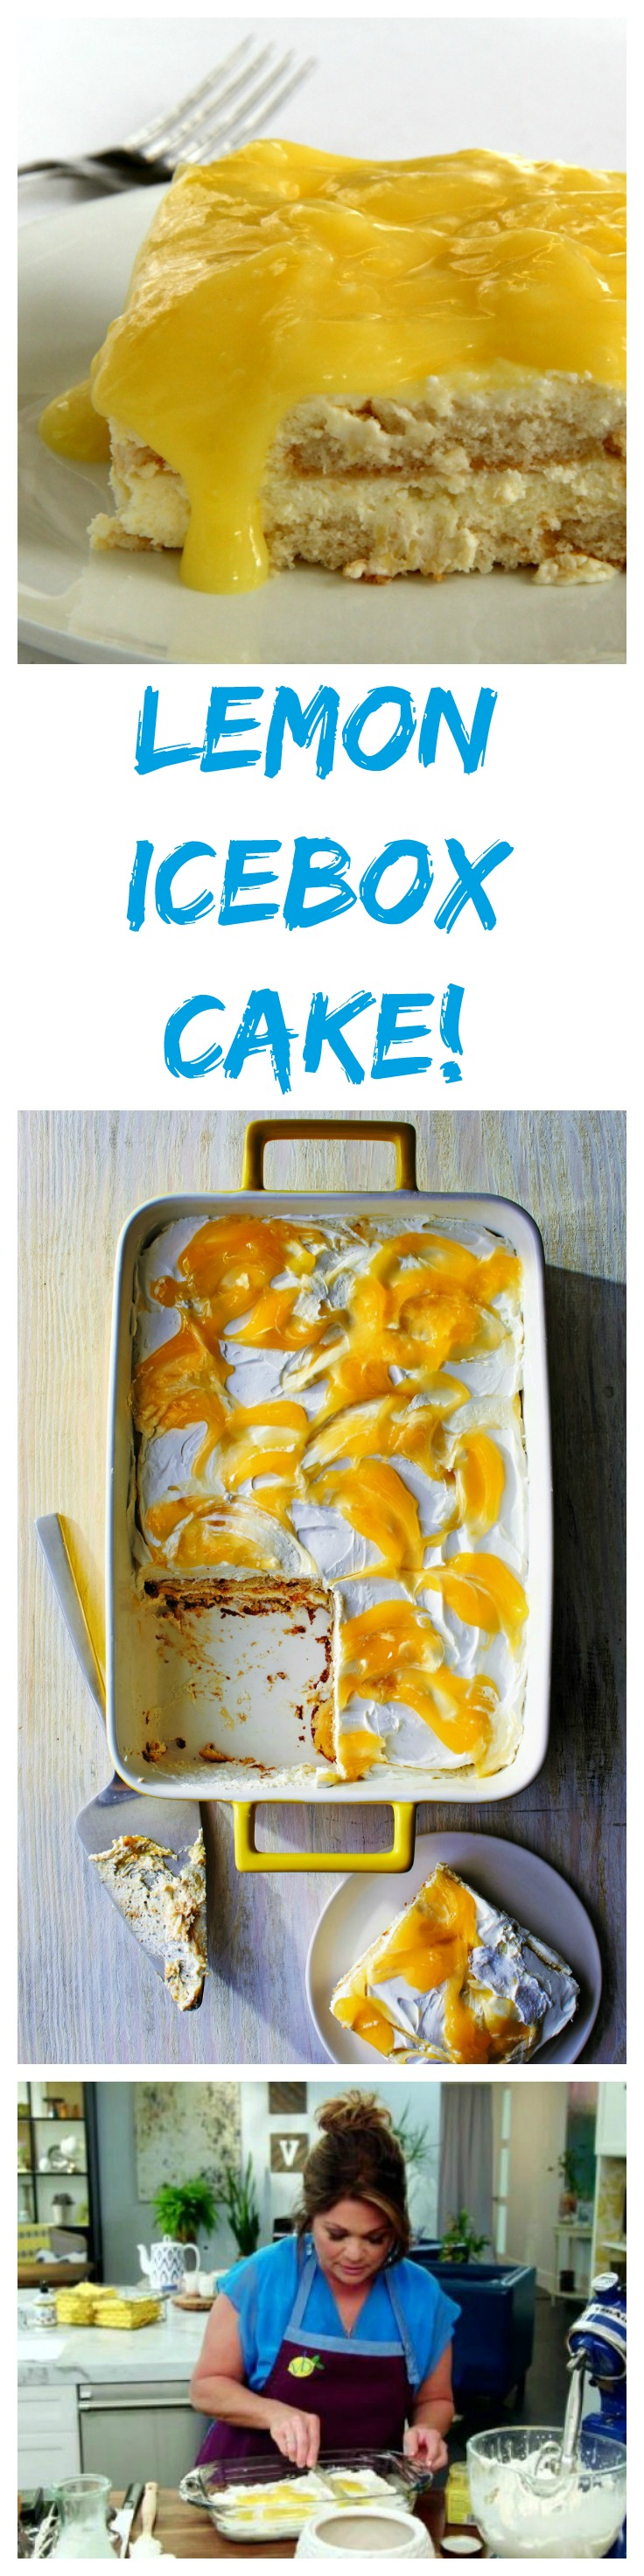 Lemon Icebox Cake by Valerie Bertinelli on ShockinglyDelicious.com